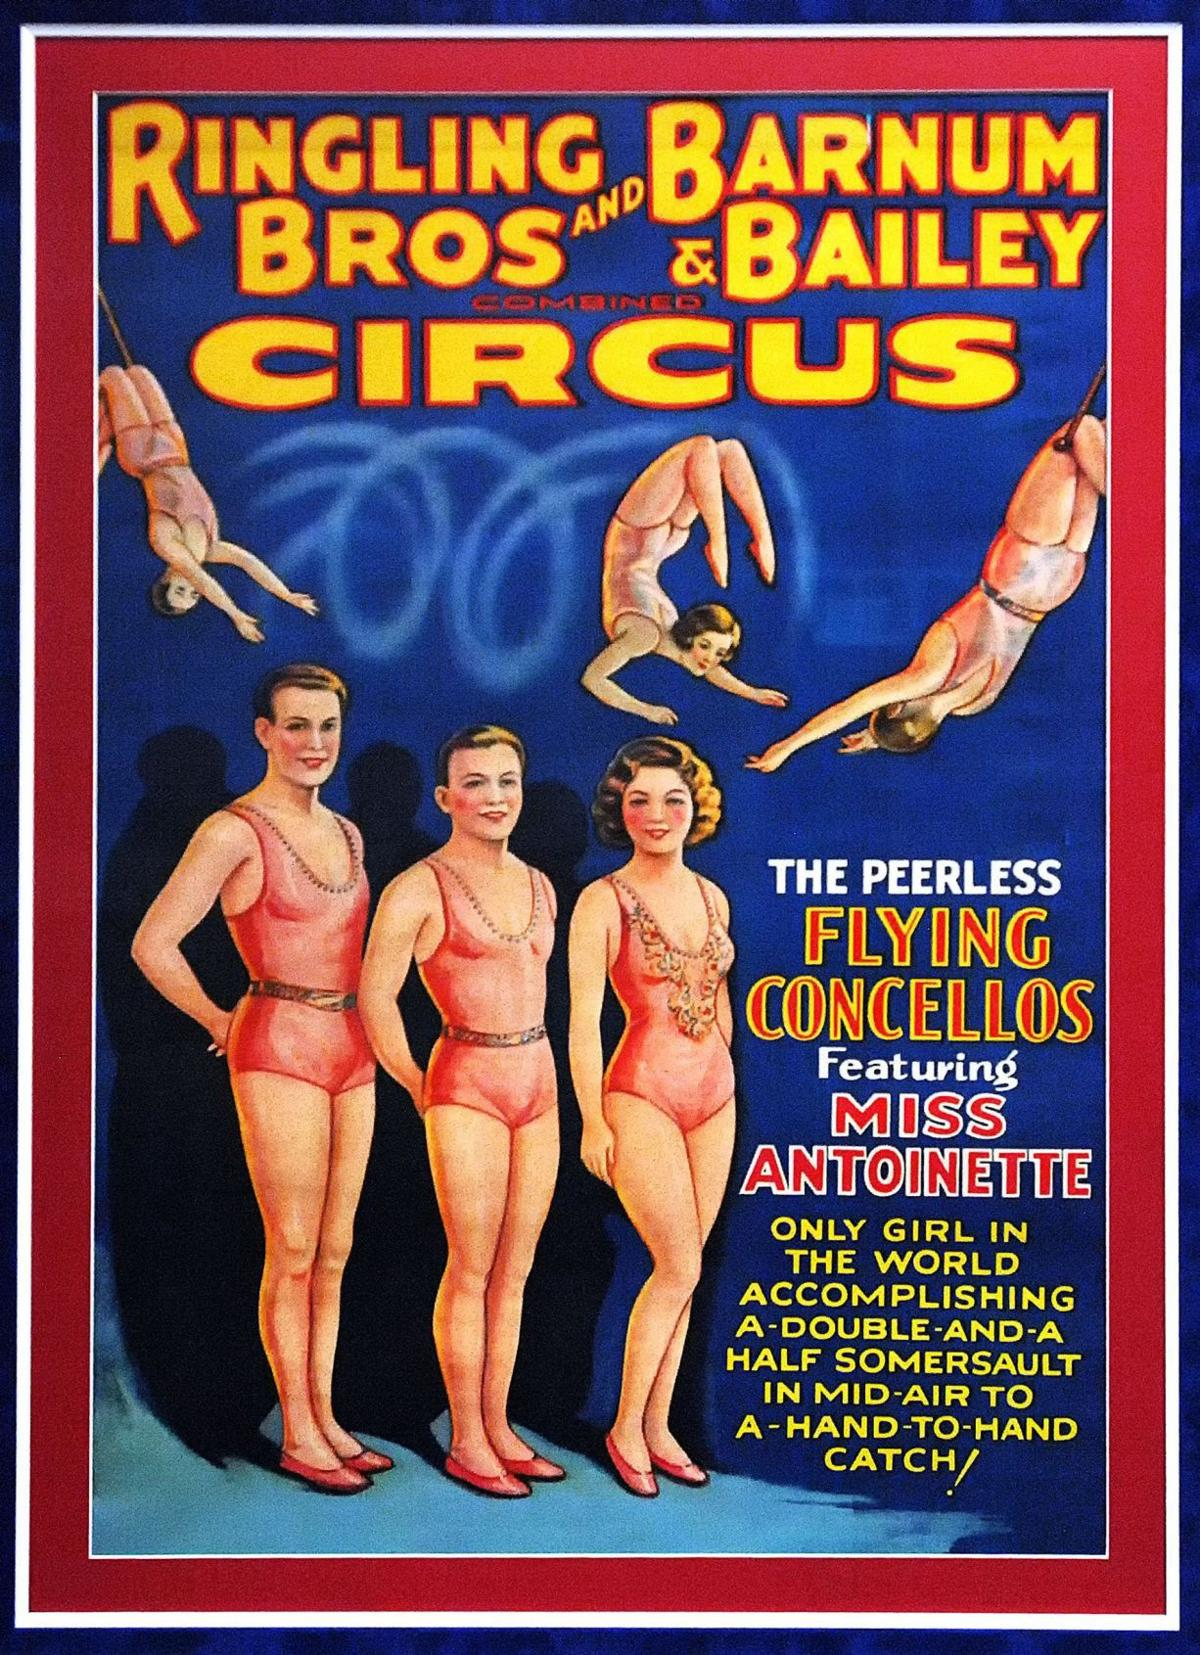 the history of the ringling bros and barnum bailey circus After its nearly century and a half run, ringling bros and barnum & bailey circus plans to shut down the greatest show on earth the historic american spectacle will deliver its final show in may, says kenneth feld, the chairman and ceo of feld entertainment, the producer of ringling feld.